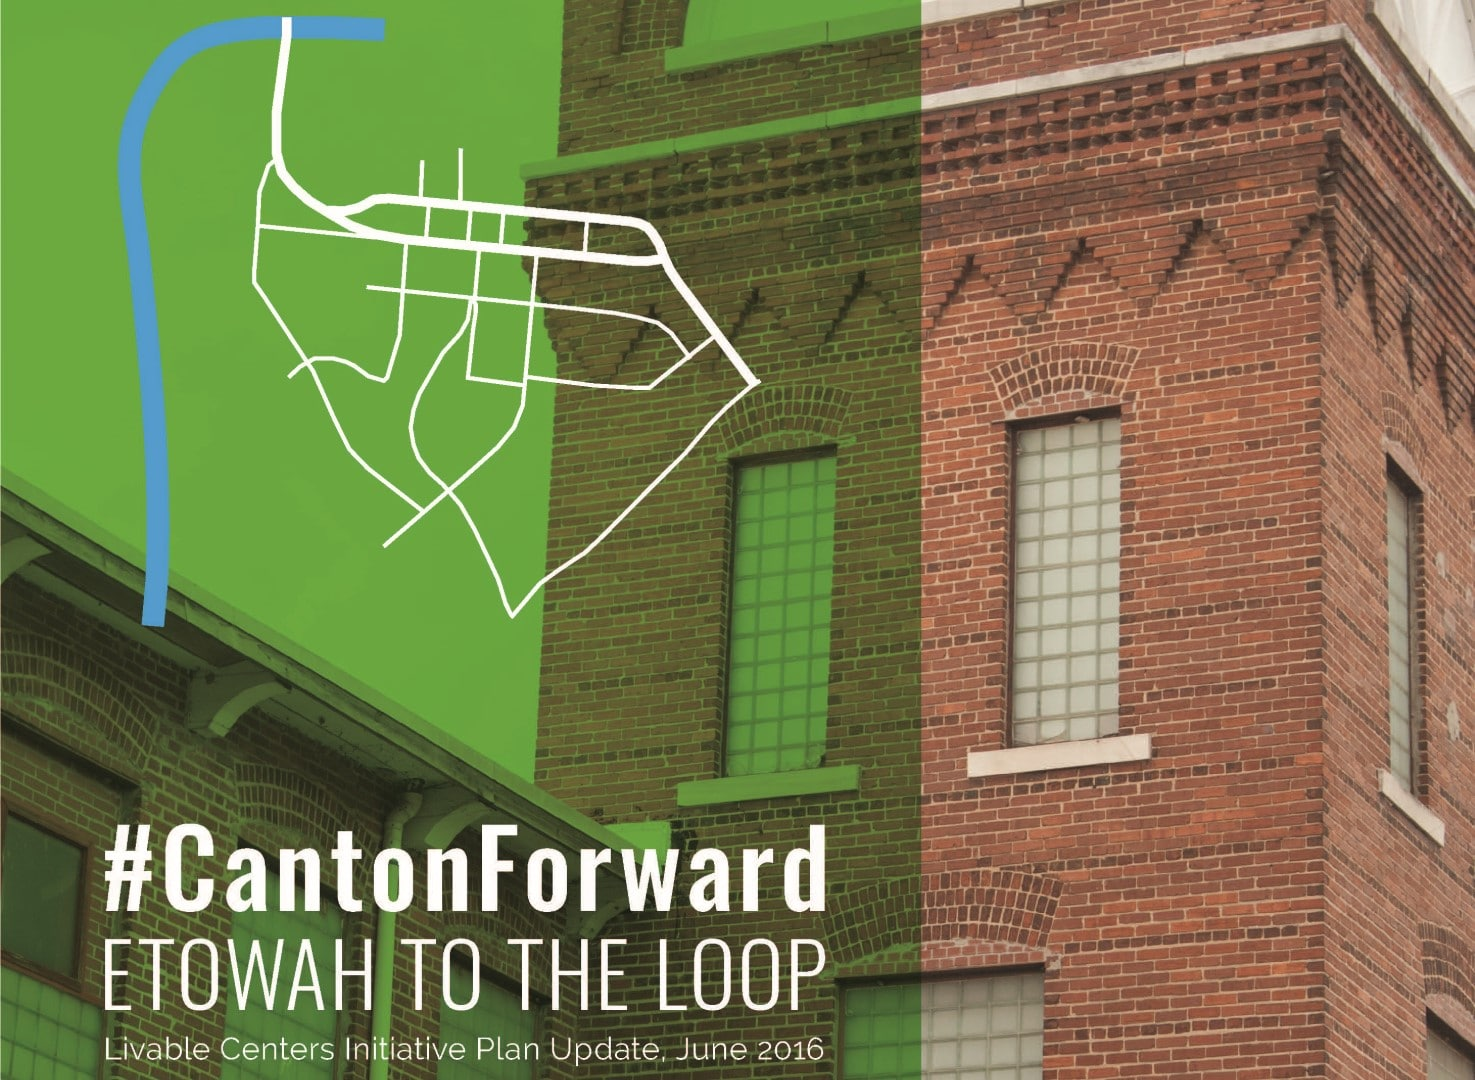 #CantonForward LCI